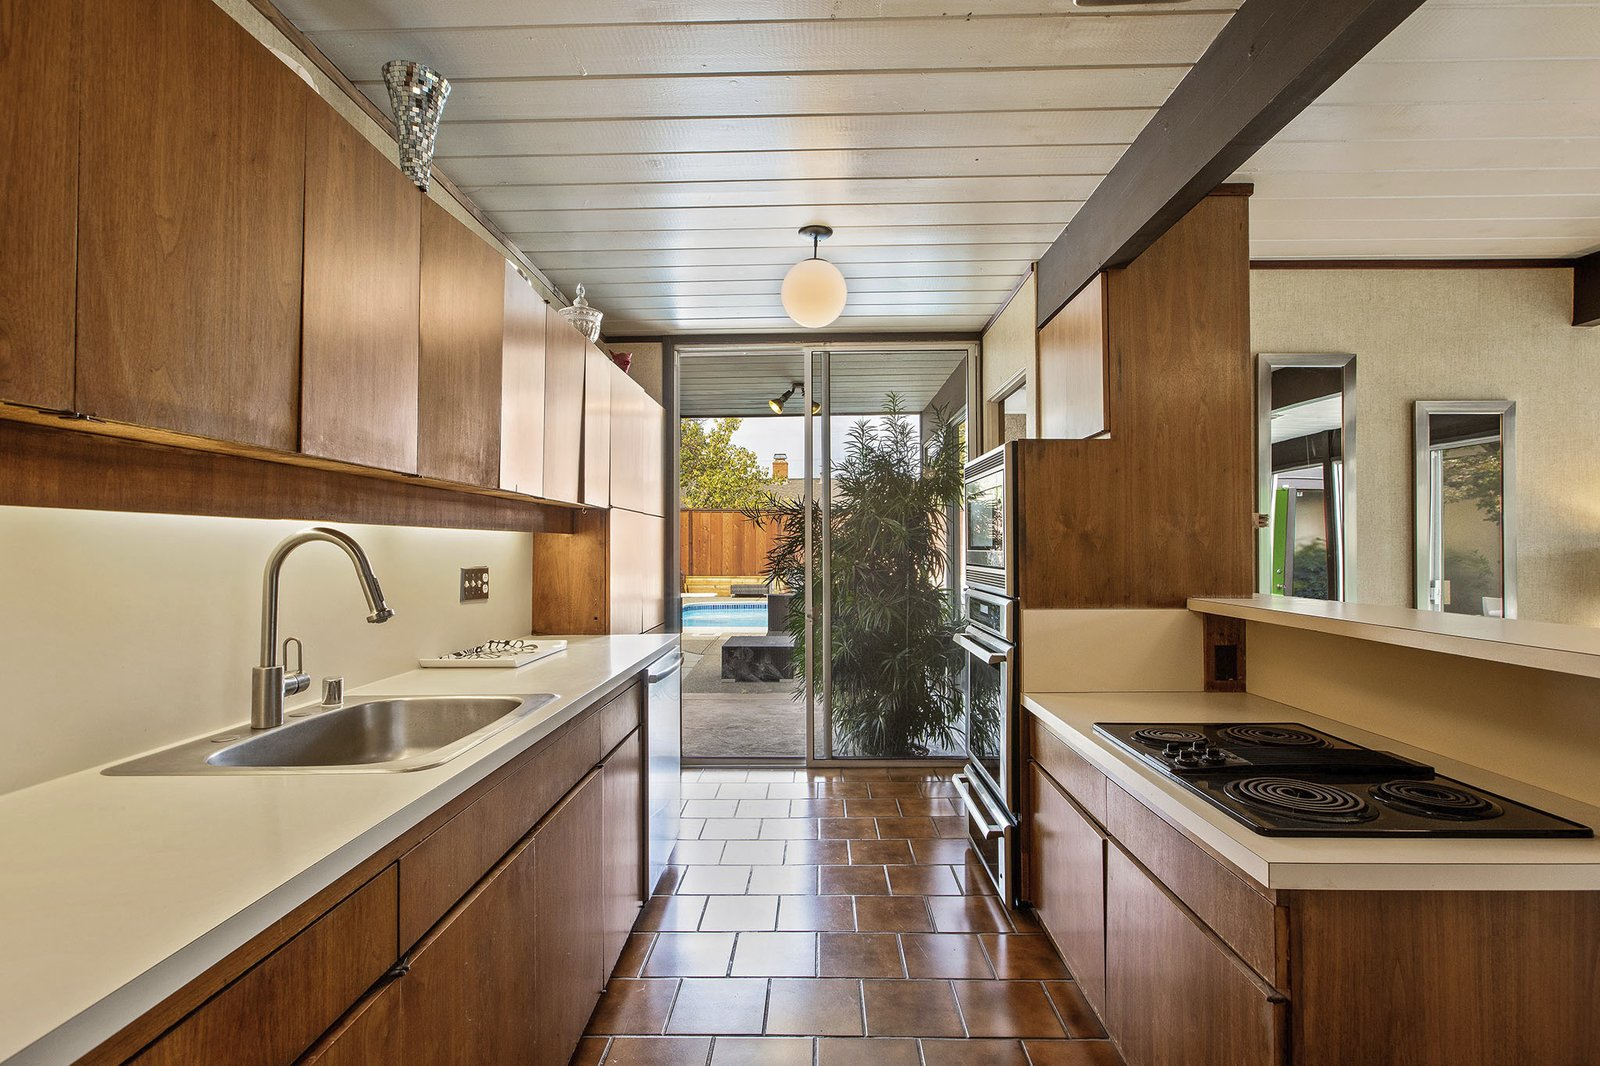 Kitchen, Drop In Sink, Pendant Lighting, Cooktops, Wood Cabinet, Laminate Counter, Wall Oven, Microwave, and Ceramic Tile Floor Sliding glass doors in the kitchen open to the outdoors.  Photo 11 of 13 in A Double A-Frame Eichler in the Bay Area Asks $925K